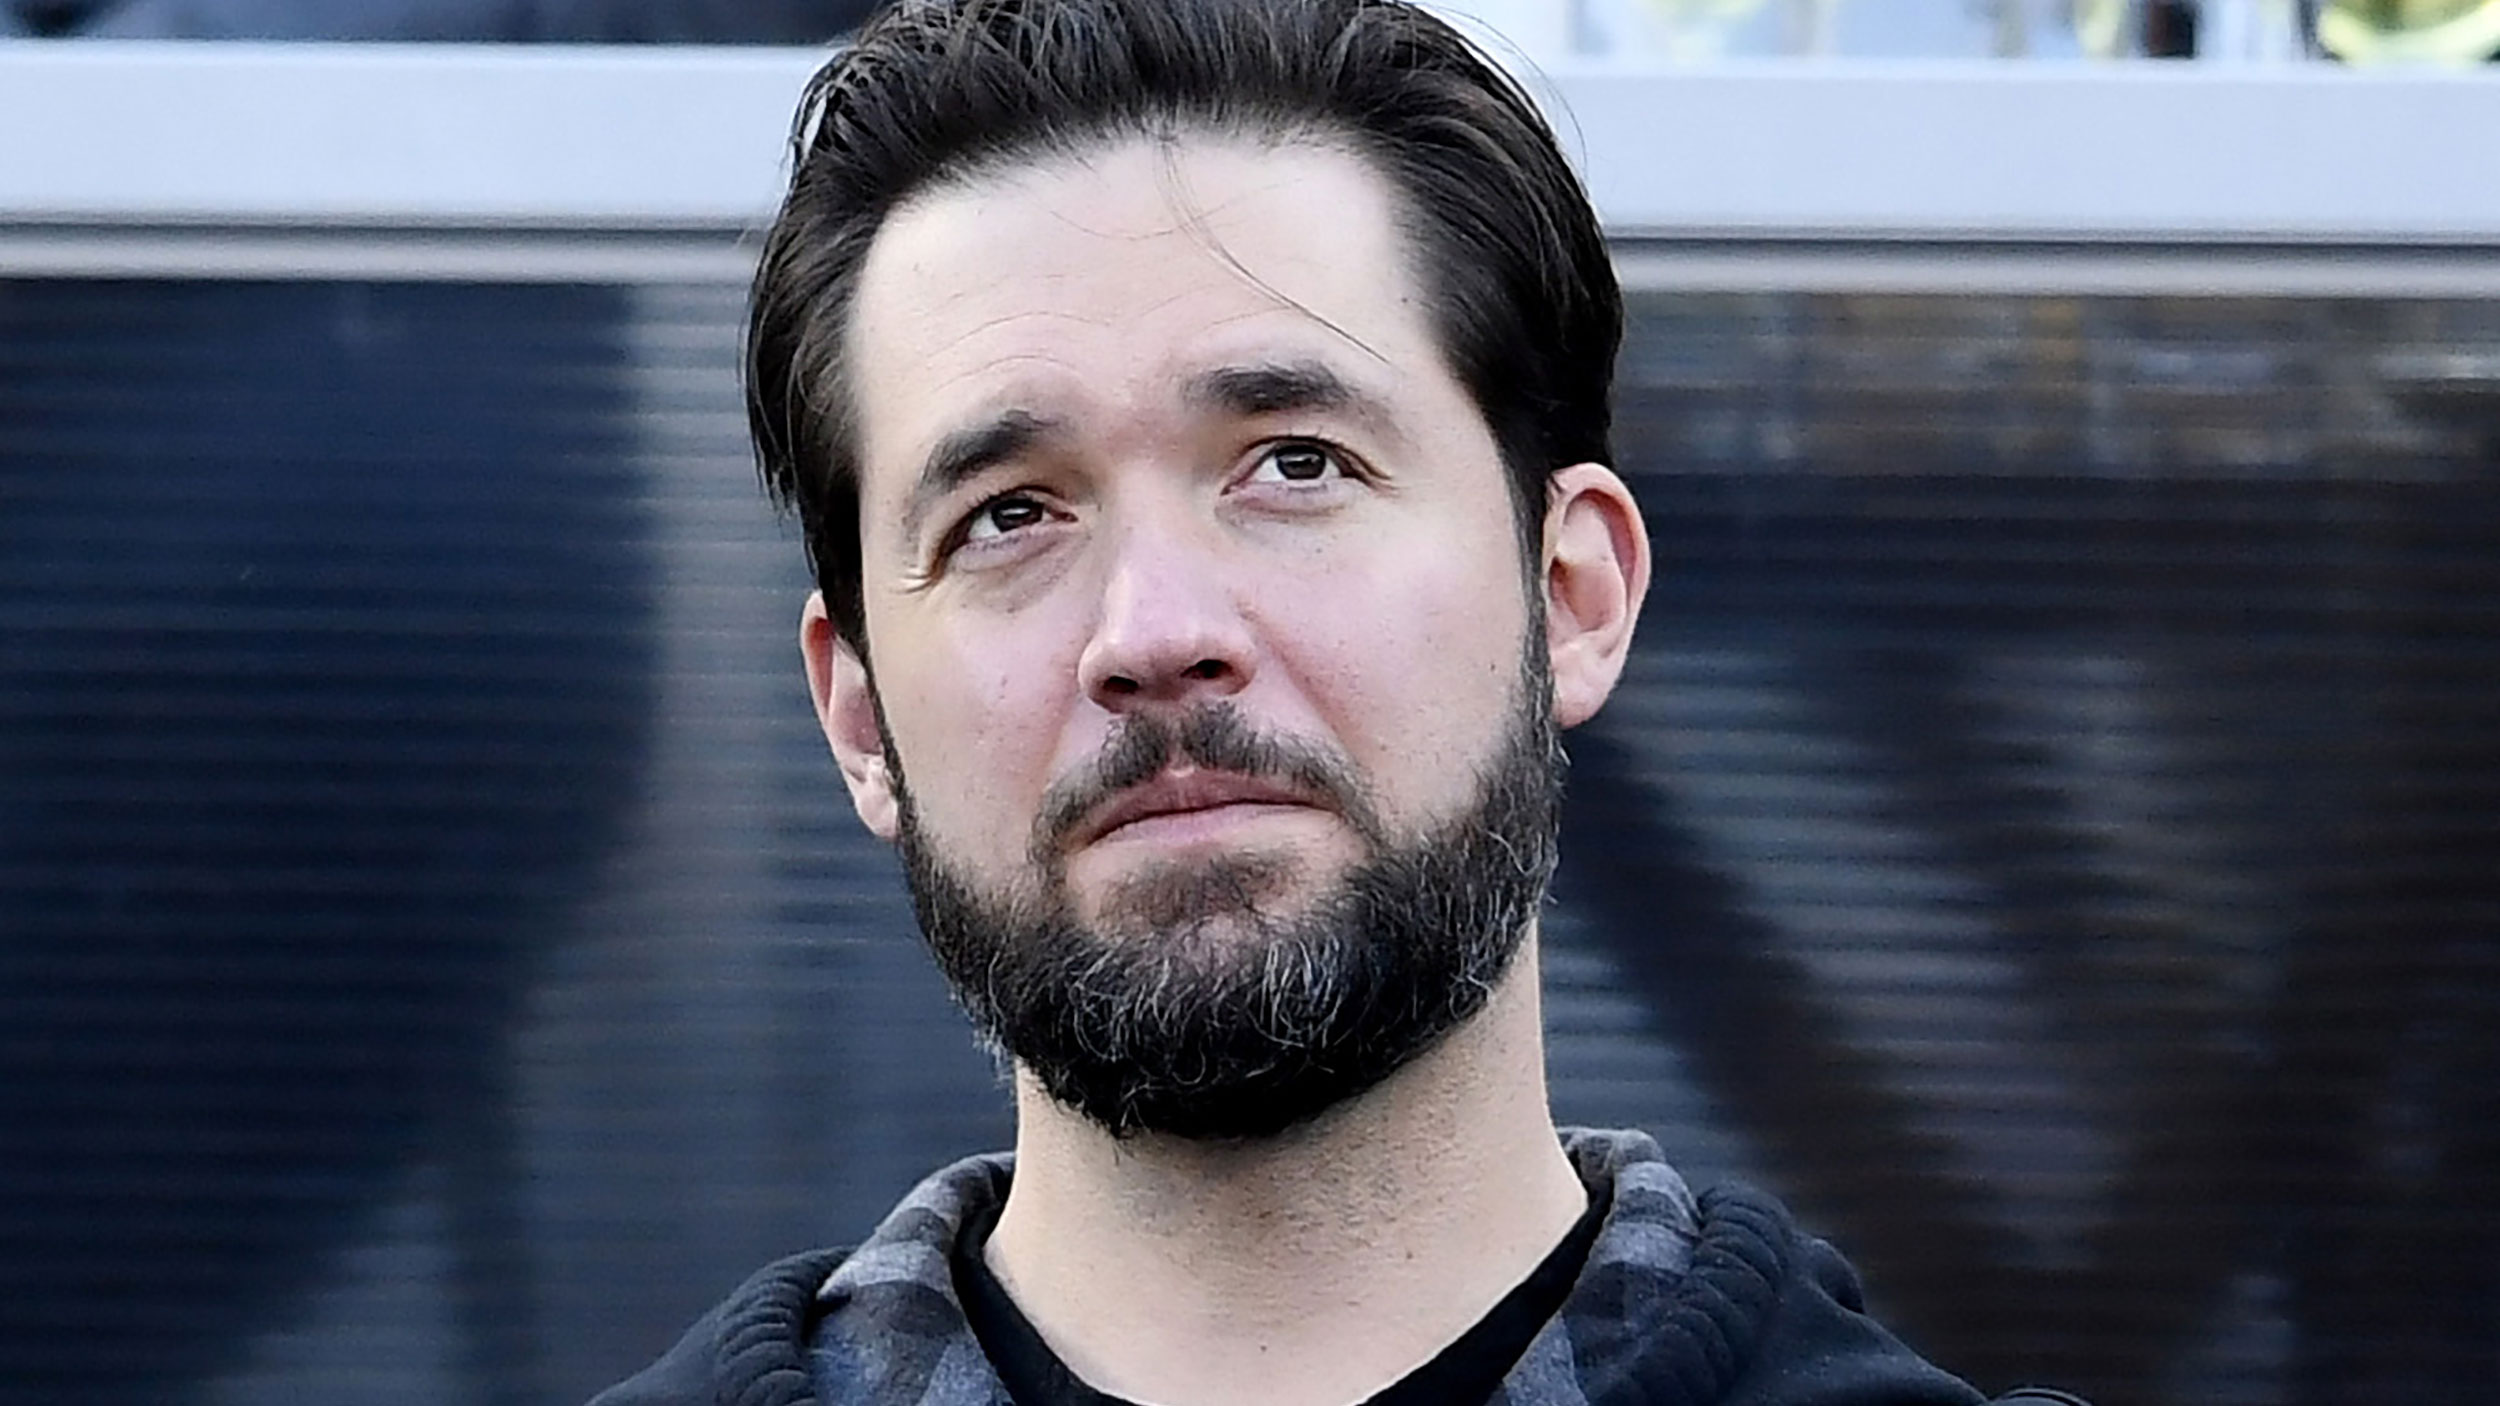 Alexis Ohanian (Photo by Hannah Peters/Getty Images)